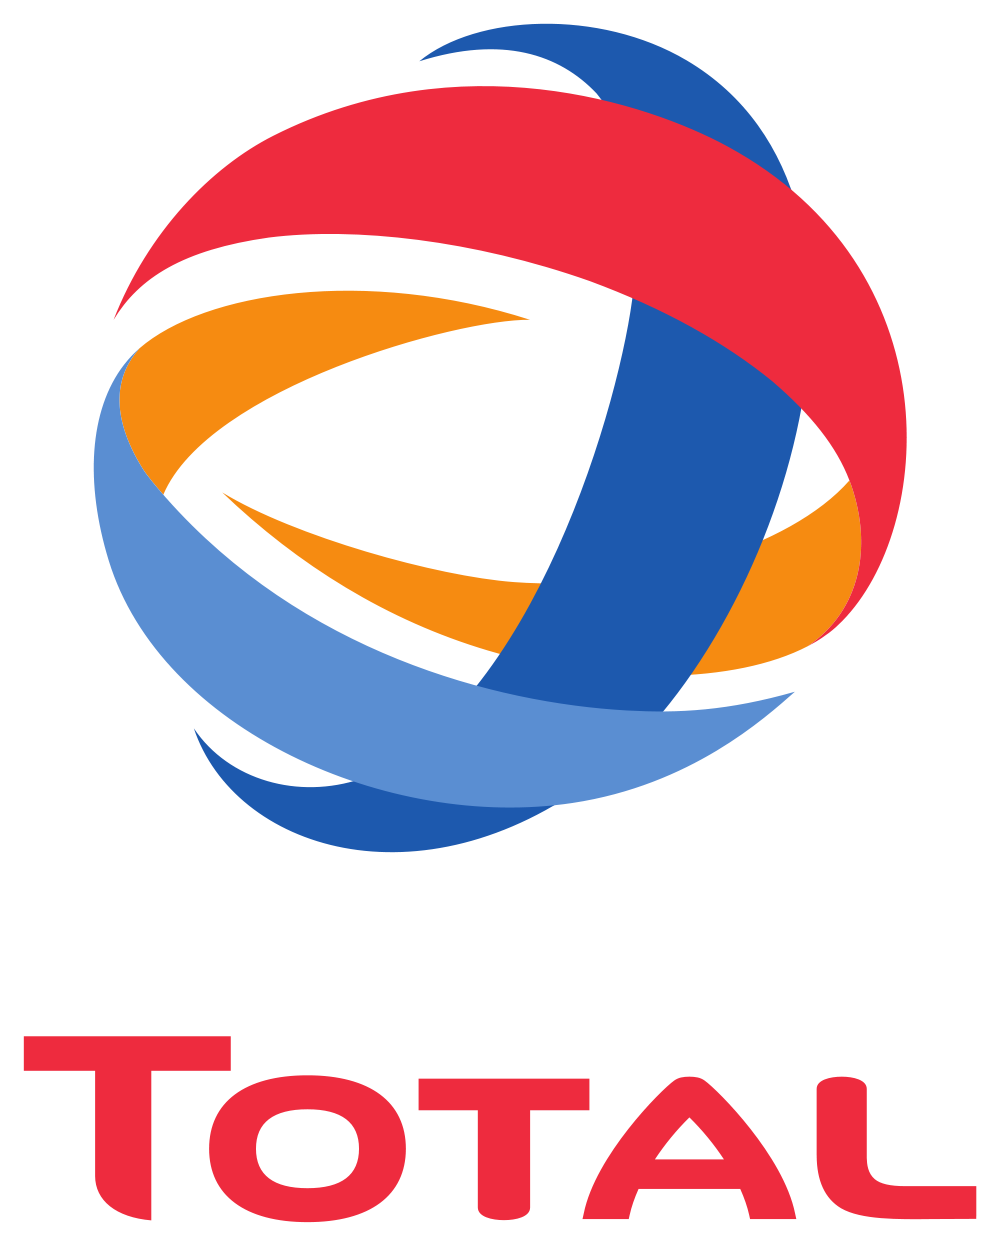 Total Logo Wallpaper